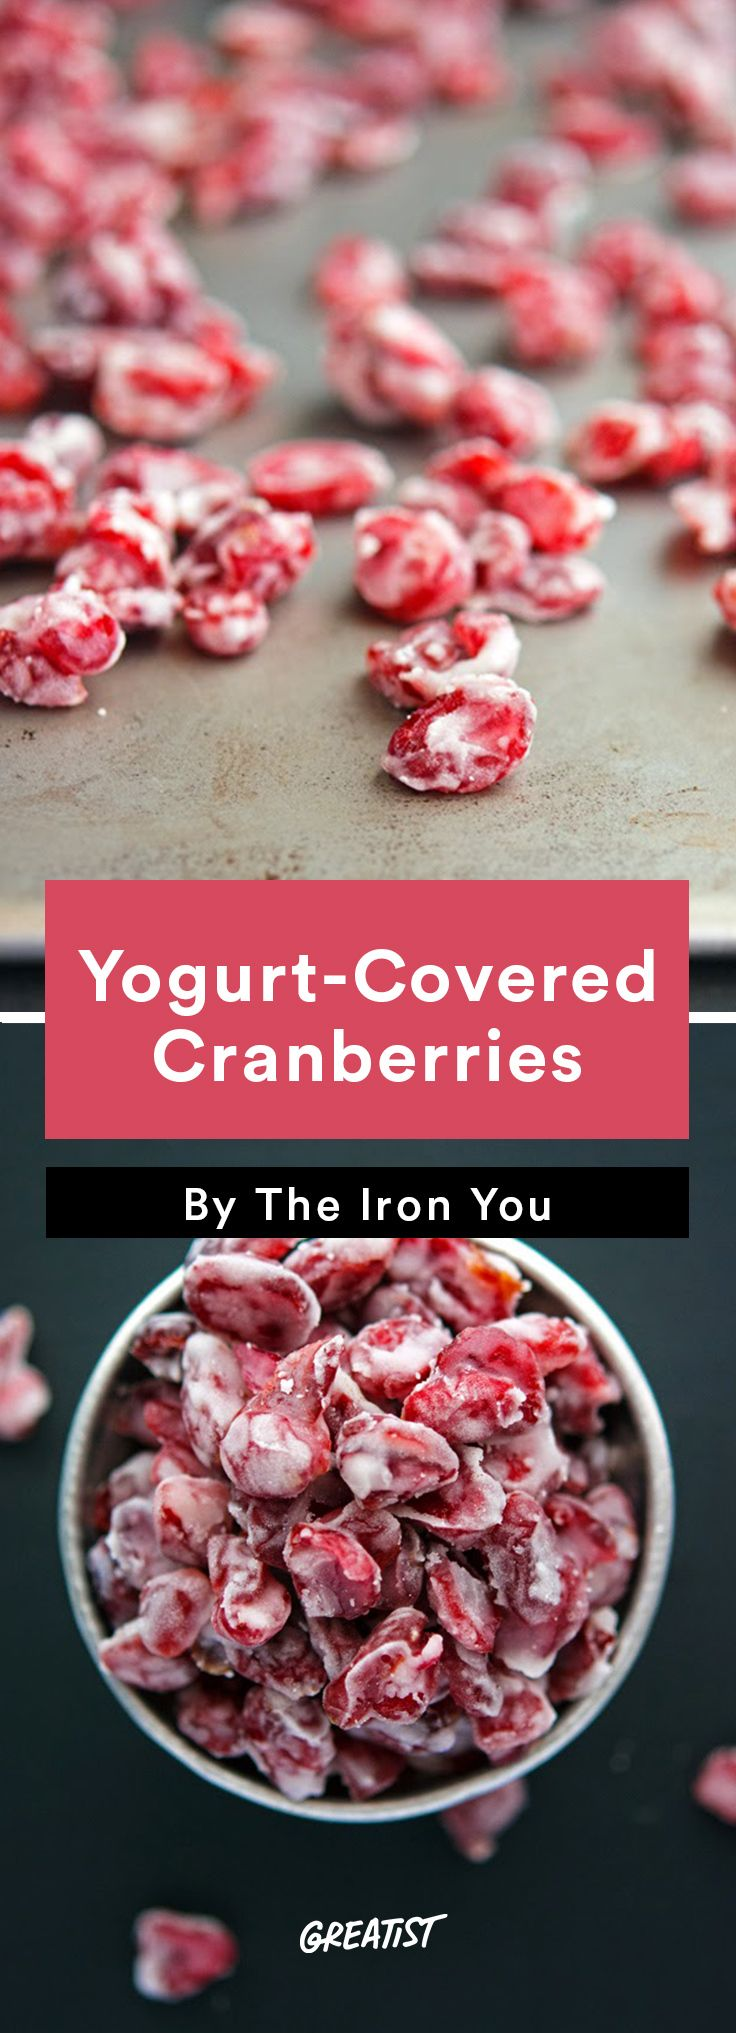 7. Yogurt-Covered Cranberries  #healthy #travel #snacks http://greatist.com/eat/healthy-snack-recipes-to-take-on-vacation